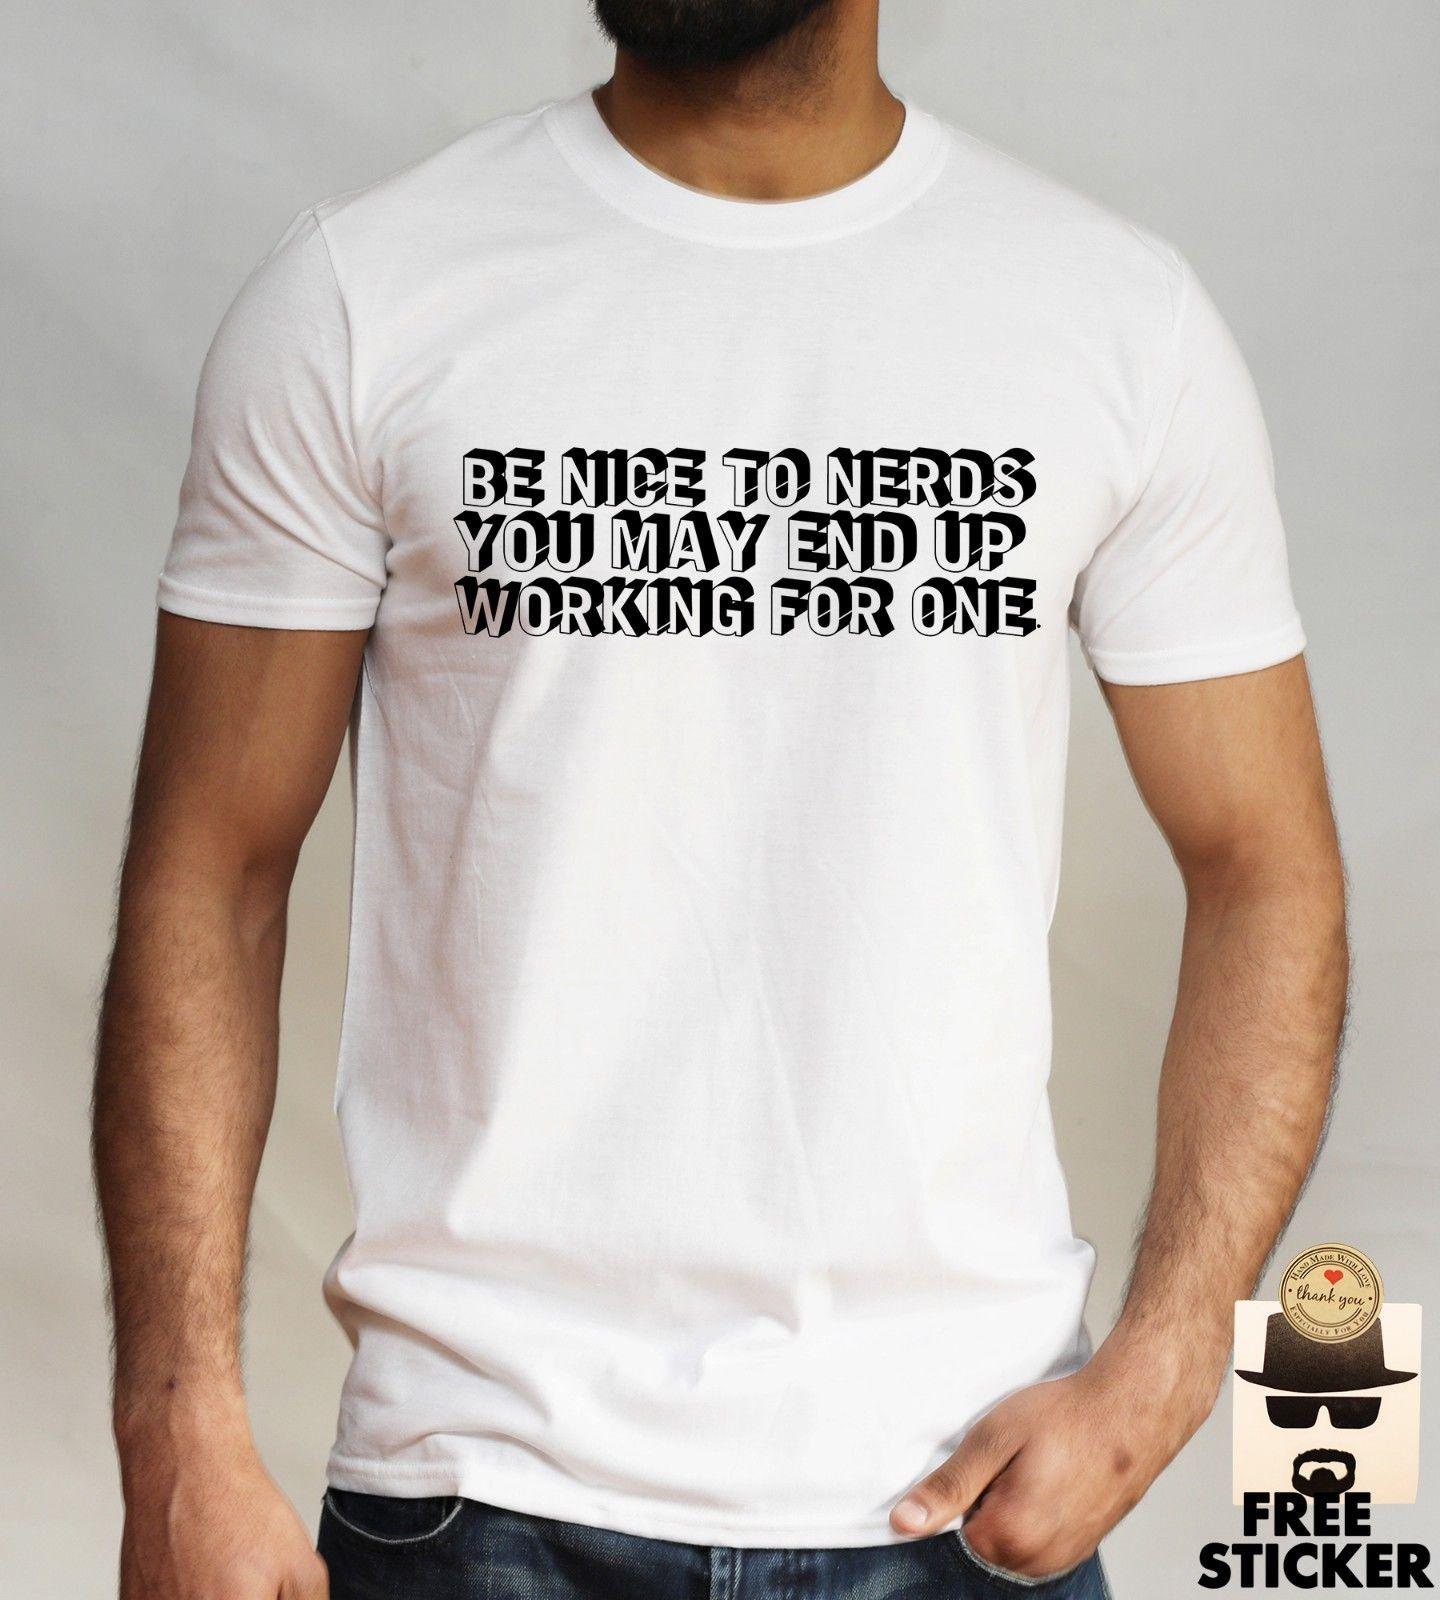 96f9bbfed Nerd Boss T Shirt Funny Quotation Tee Cool Business, Fashion Wear Gift,  Mens Top Really Funny Shirts Clothes T Shirt From Directwallartuk, $11.68|  DHgate.